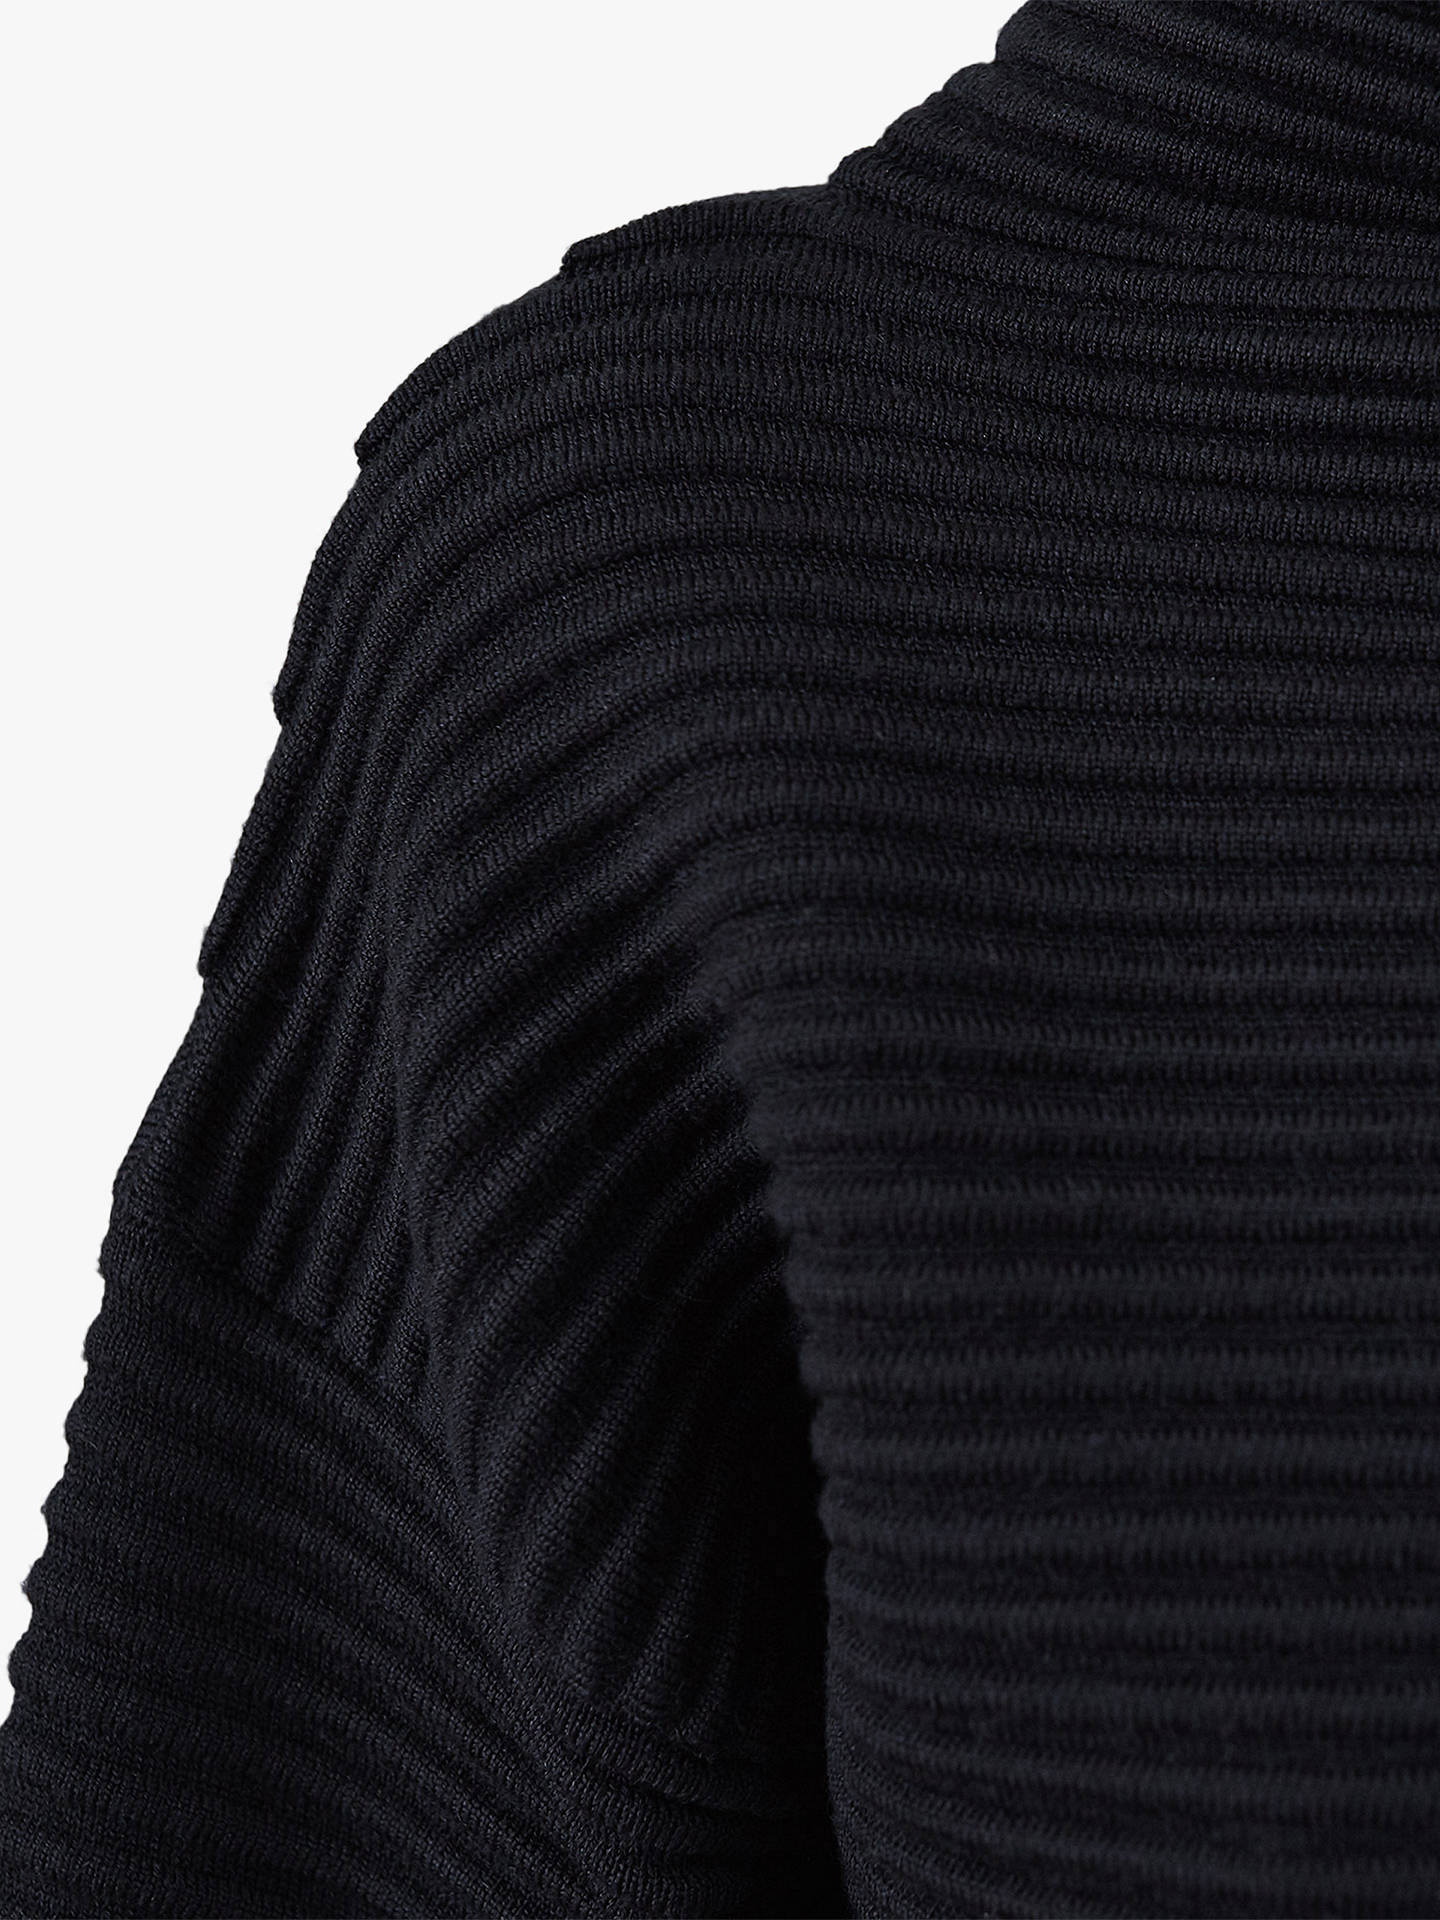 BuyReiss Malia Ottoman Ribbed Jumper, Navy, M Online at johnlewis.com